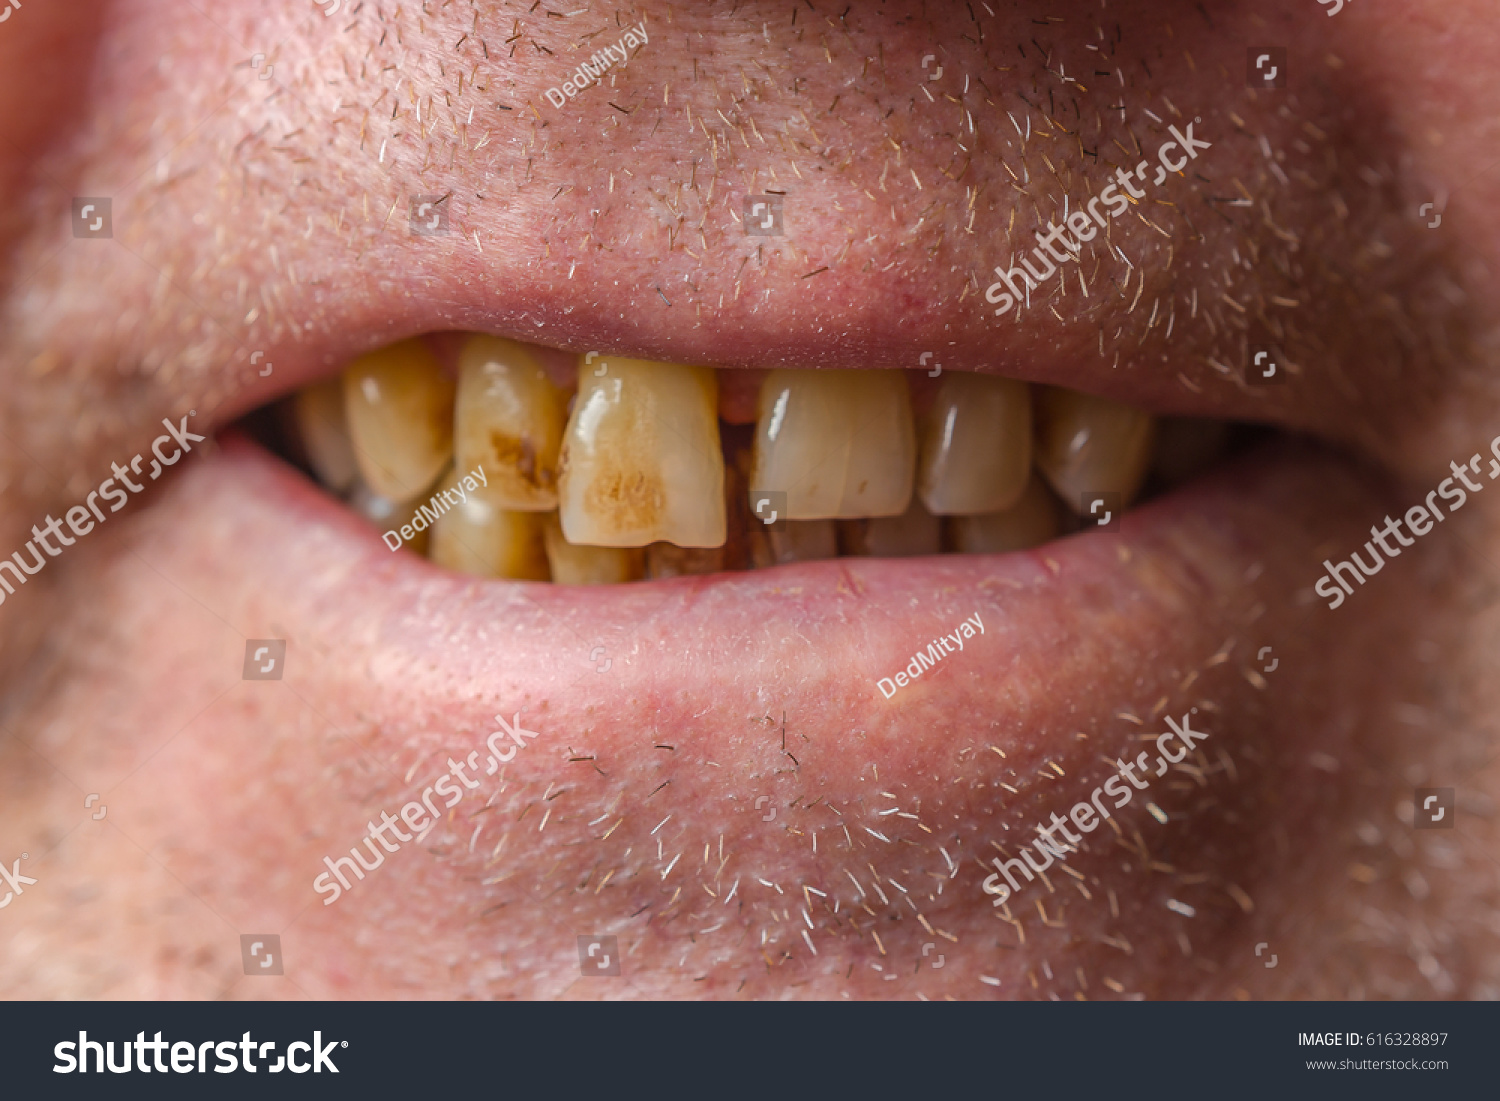 dating someone with crooked teeth My super cute and indie friend shirls actively seeks out people with crooked teeth because she says people with i could go on a date someone with bad teeth.